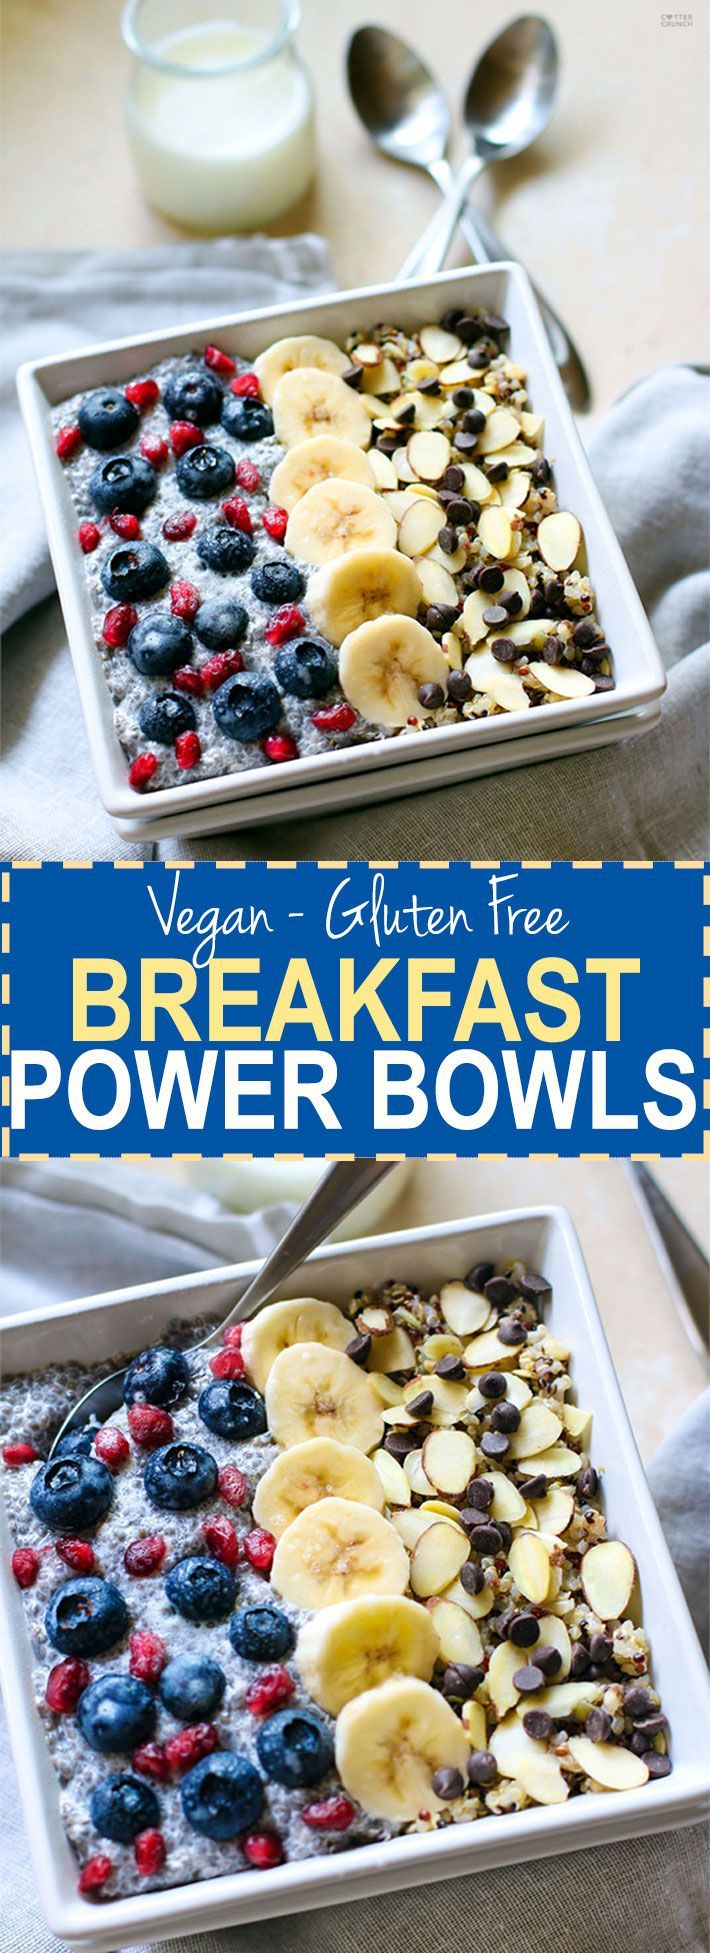 5528 best vegan and gluten free images on pinterest cooking food gluten free breakfast power bowls forumfinder Gallery